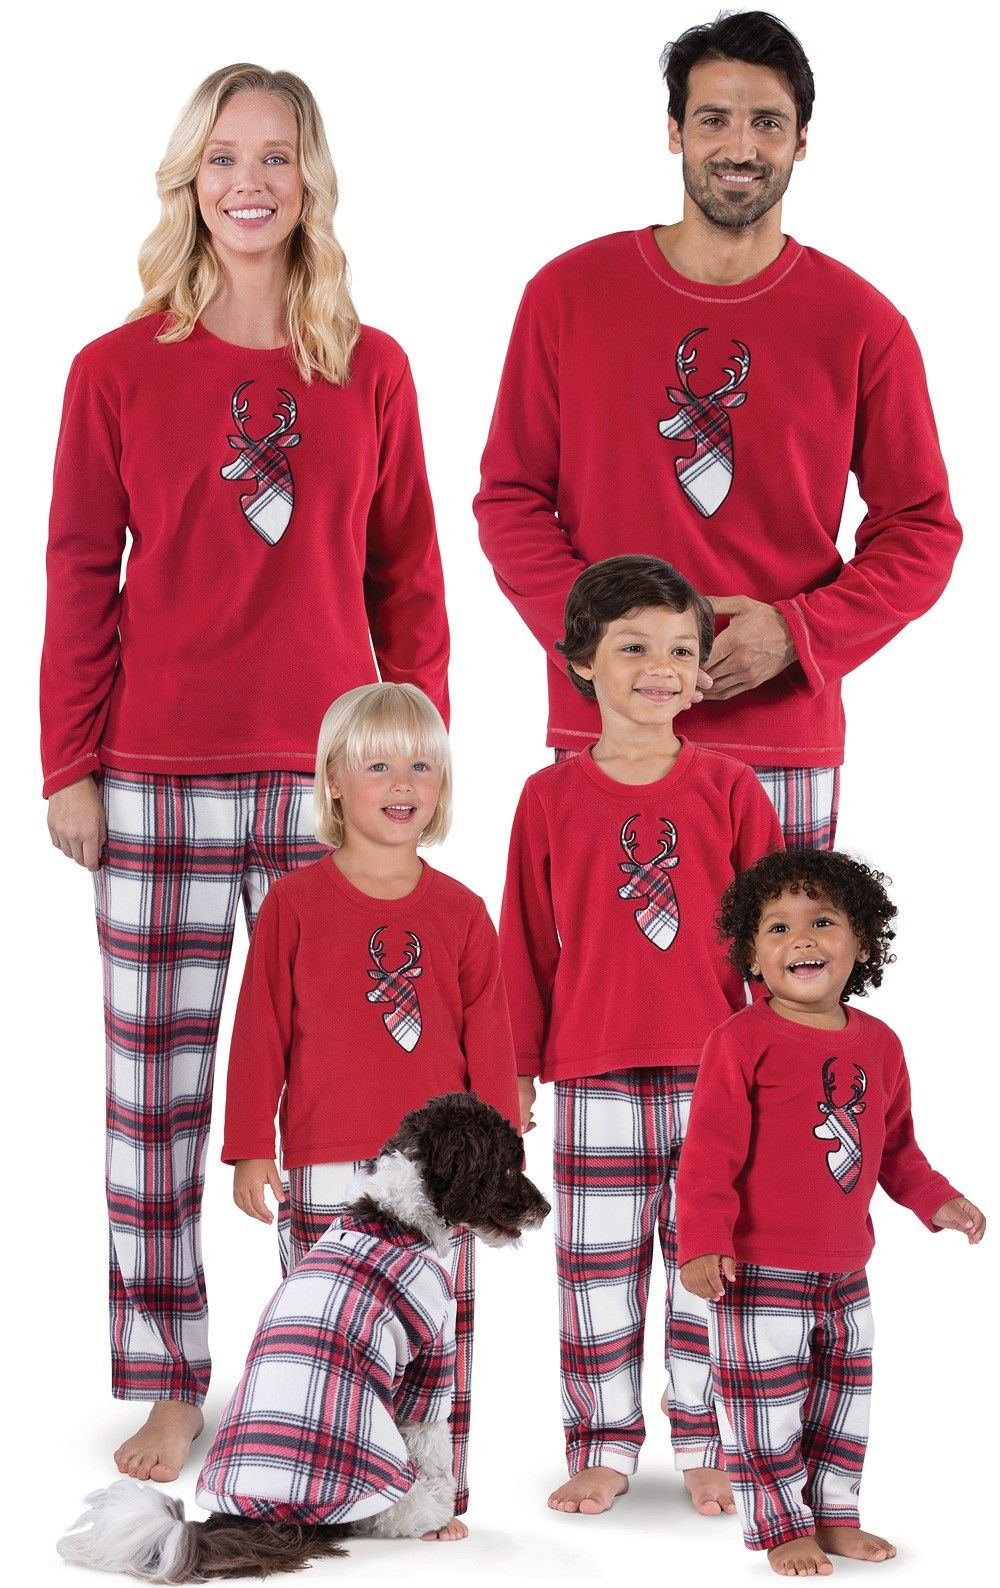 67bbf287c0 Fireside Plaid Fleece Matching Family Pajamas | View All | Matching Family  Sets | Pajamagram